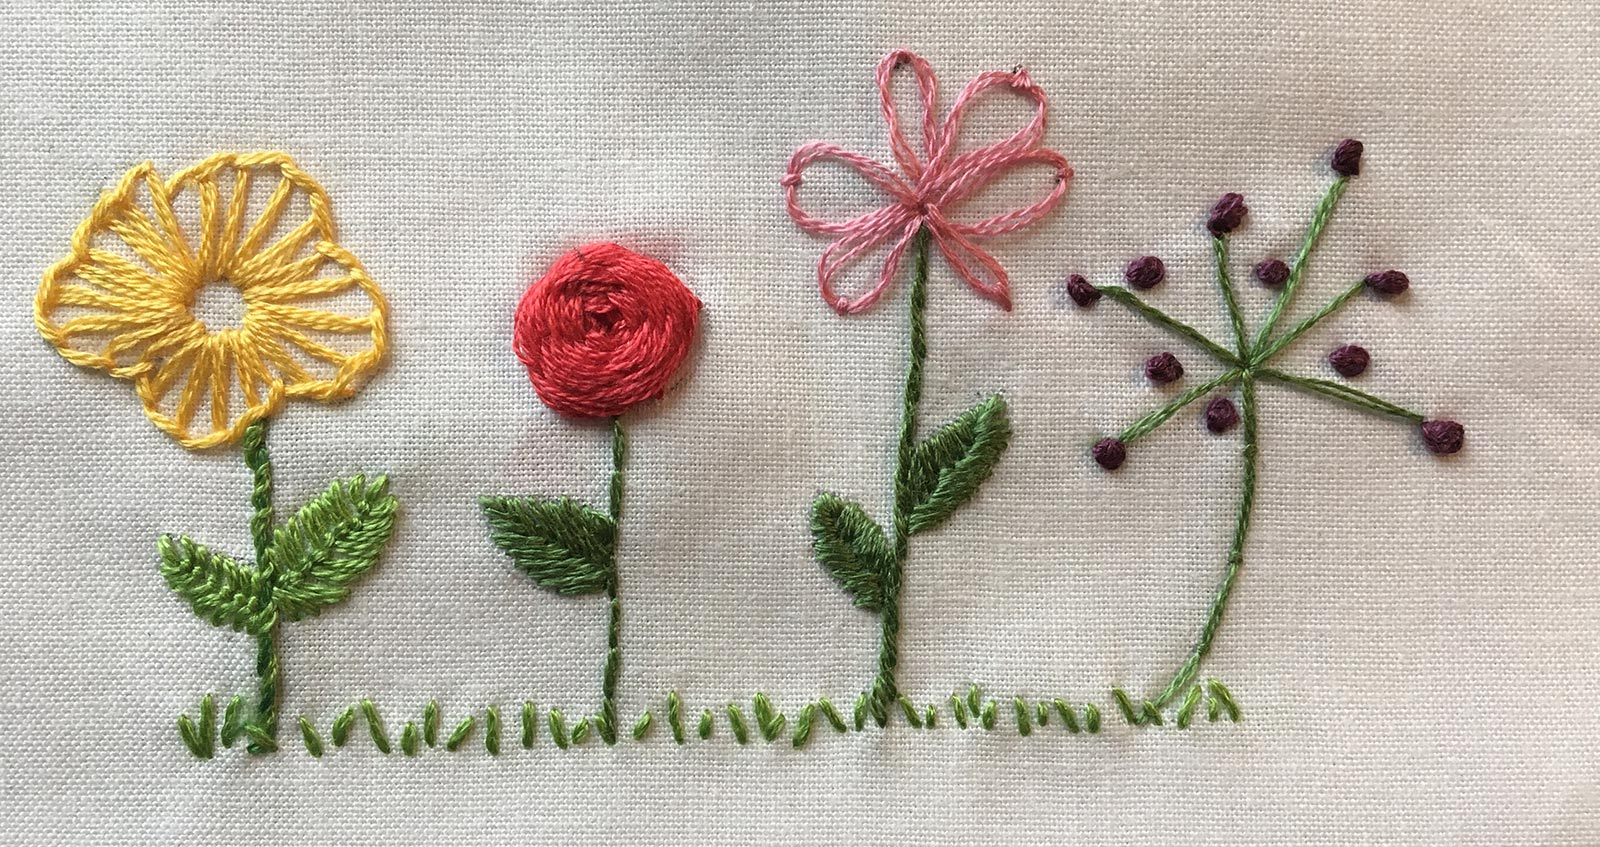 Multiple, colored flowers stitched with different embroidery stitches.